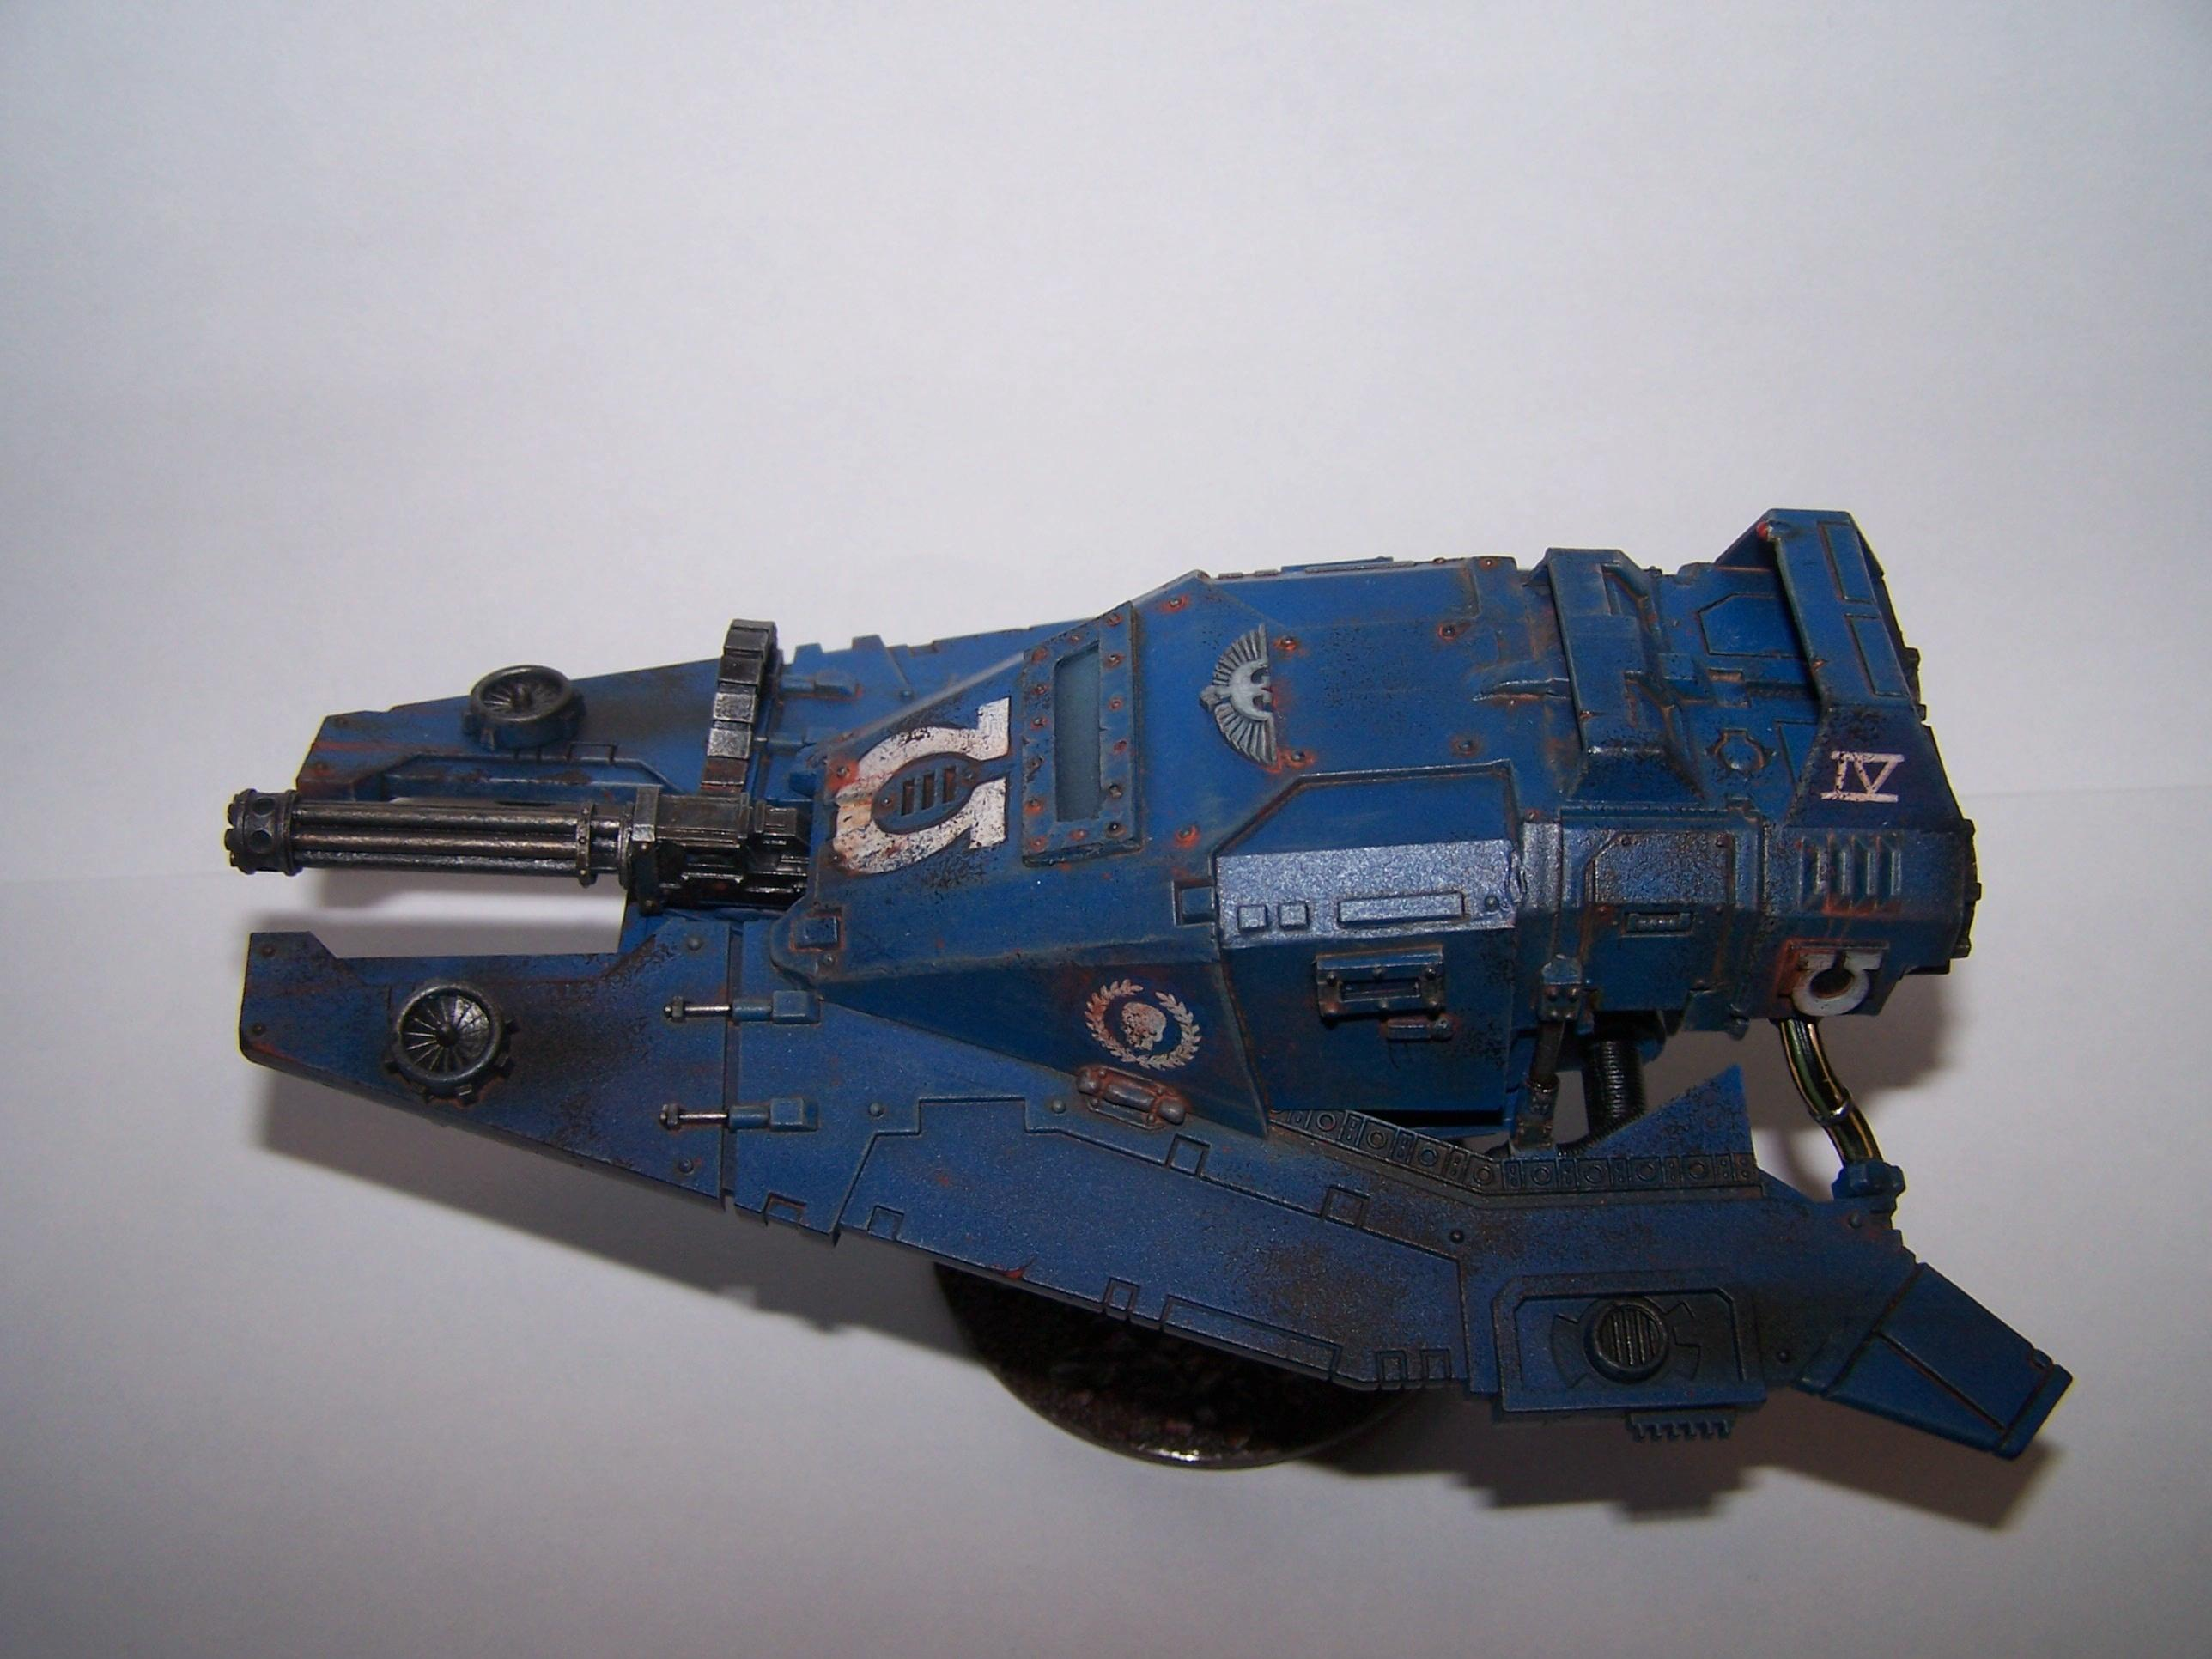 Conversion, Imperial Armor, Land Speeder, Space Marines, Ultra Marines, Ultramarines, Warhammer 40,000